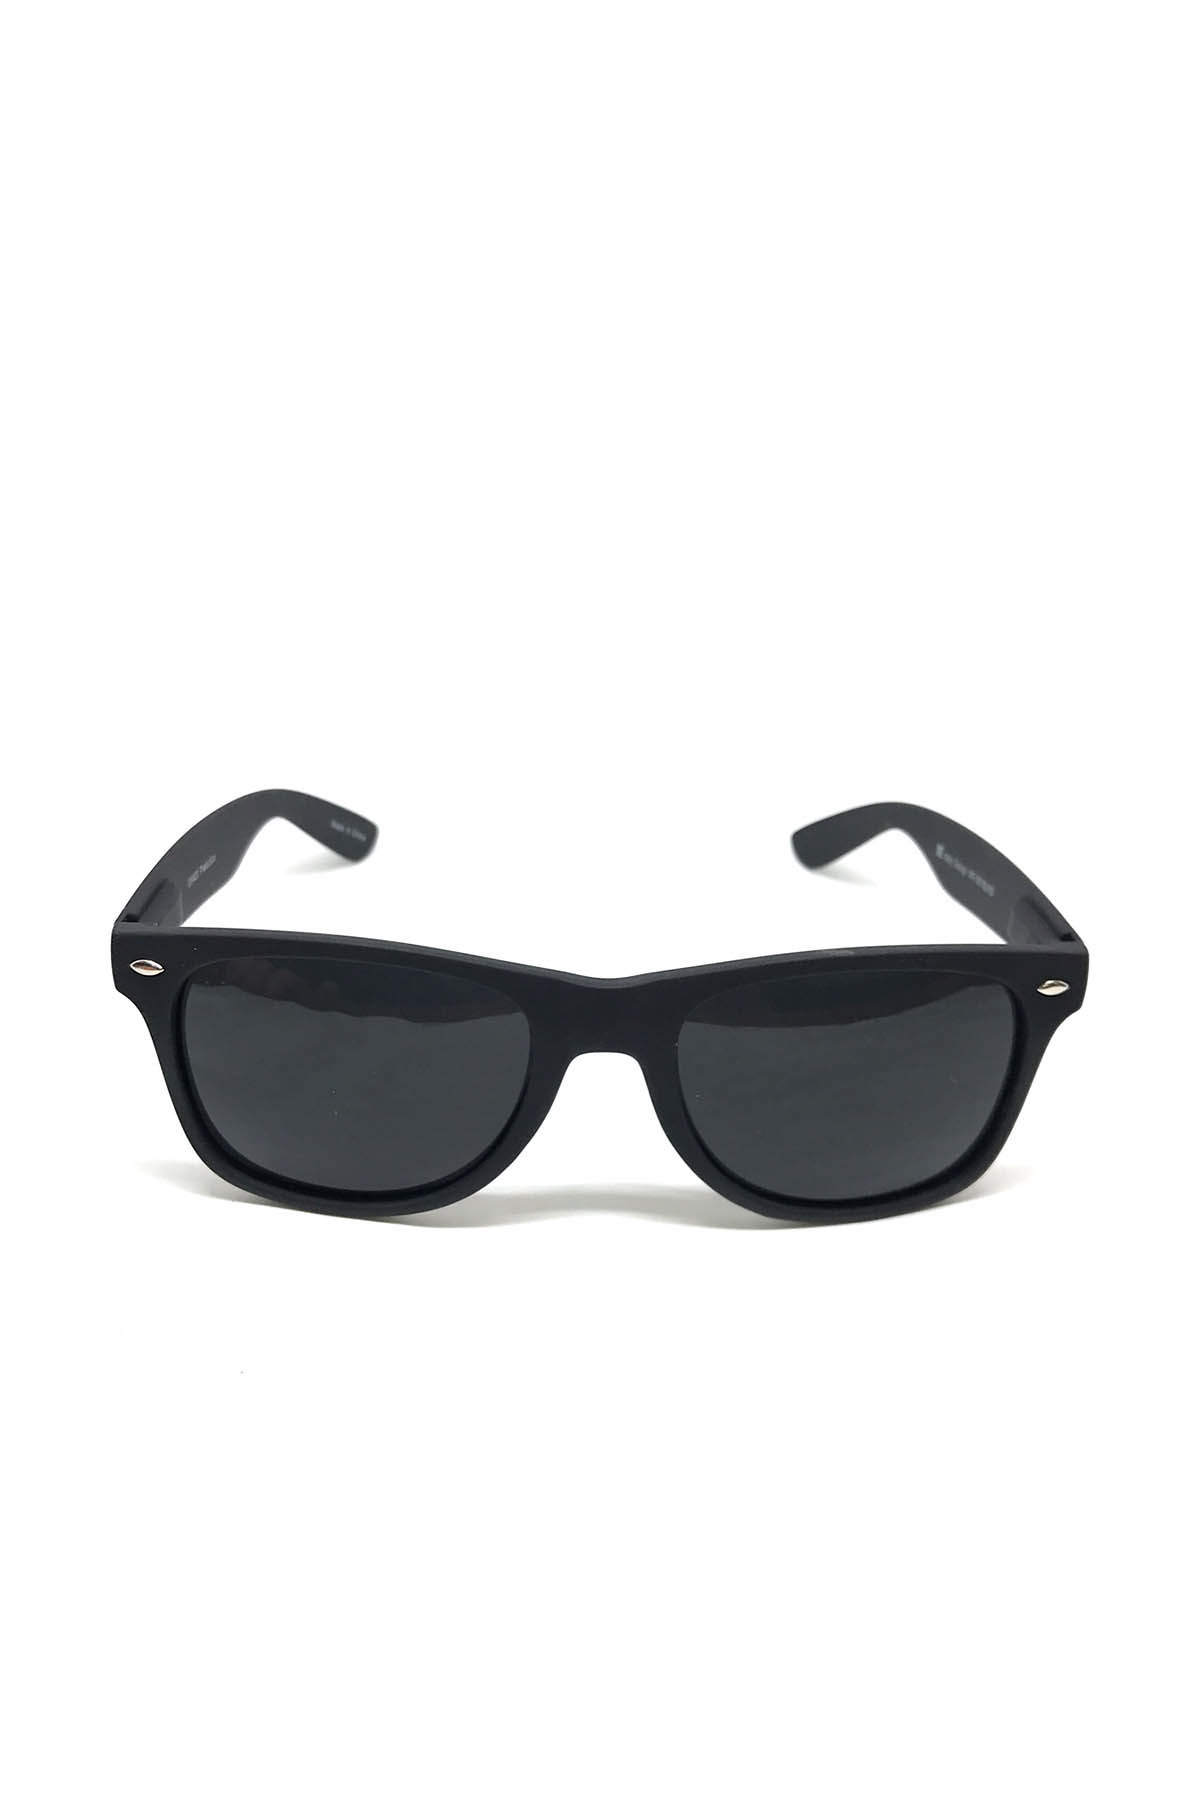 Image of Matte Black Wayfarer Sunglasses